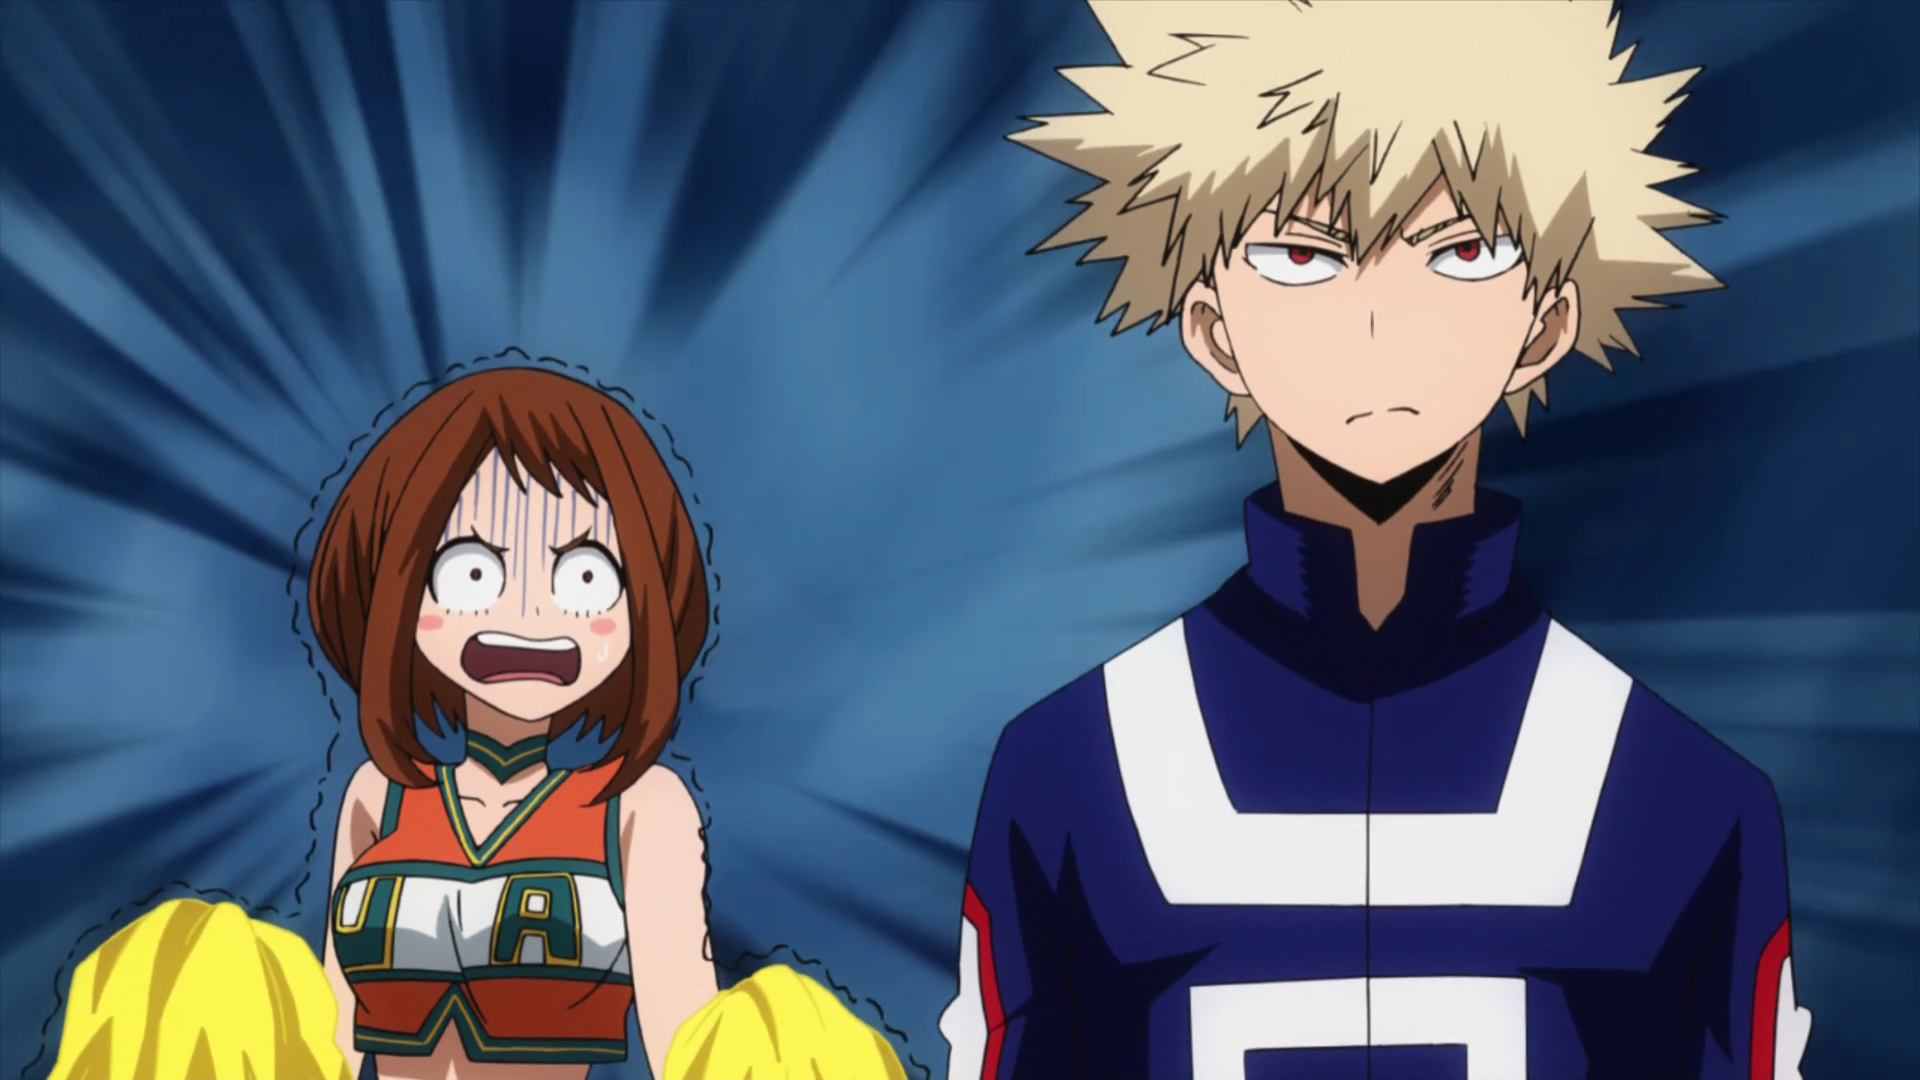 Boku No Hero Academia Kacchan X Uraraka Anime Top Wallpaper